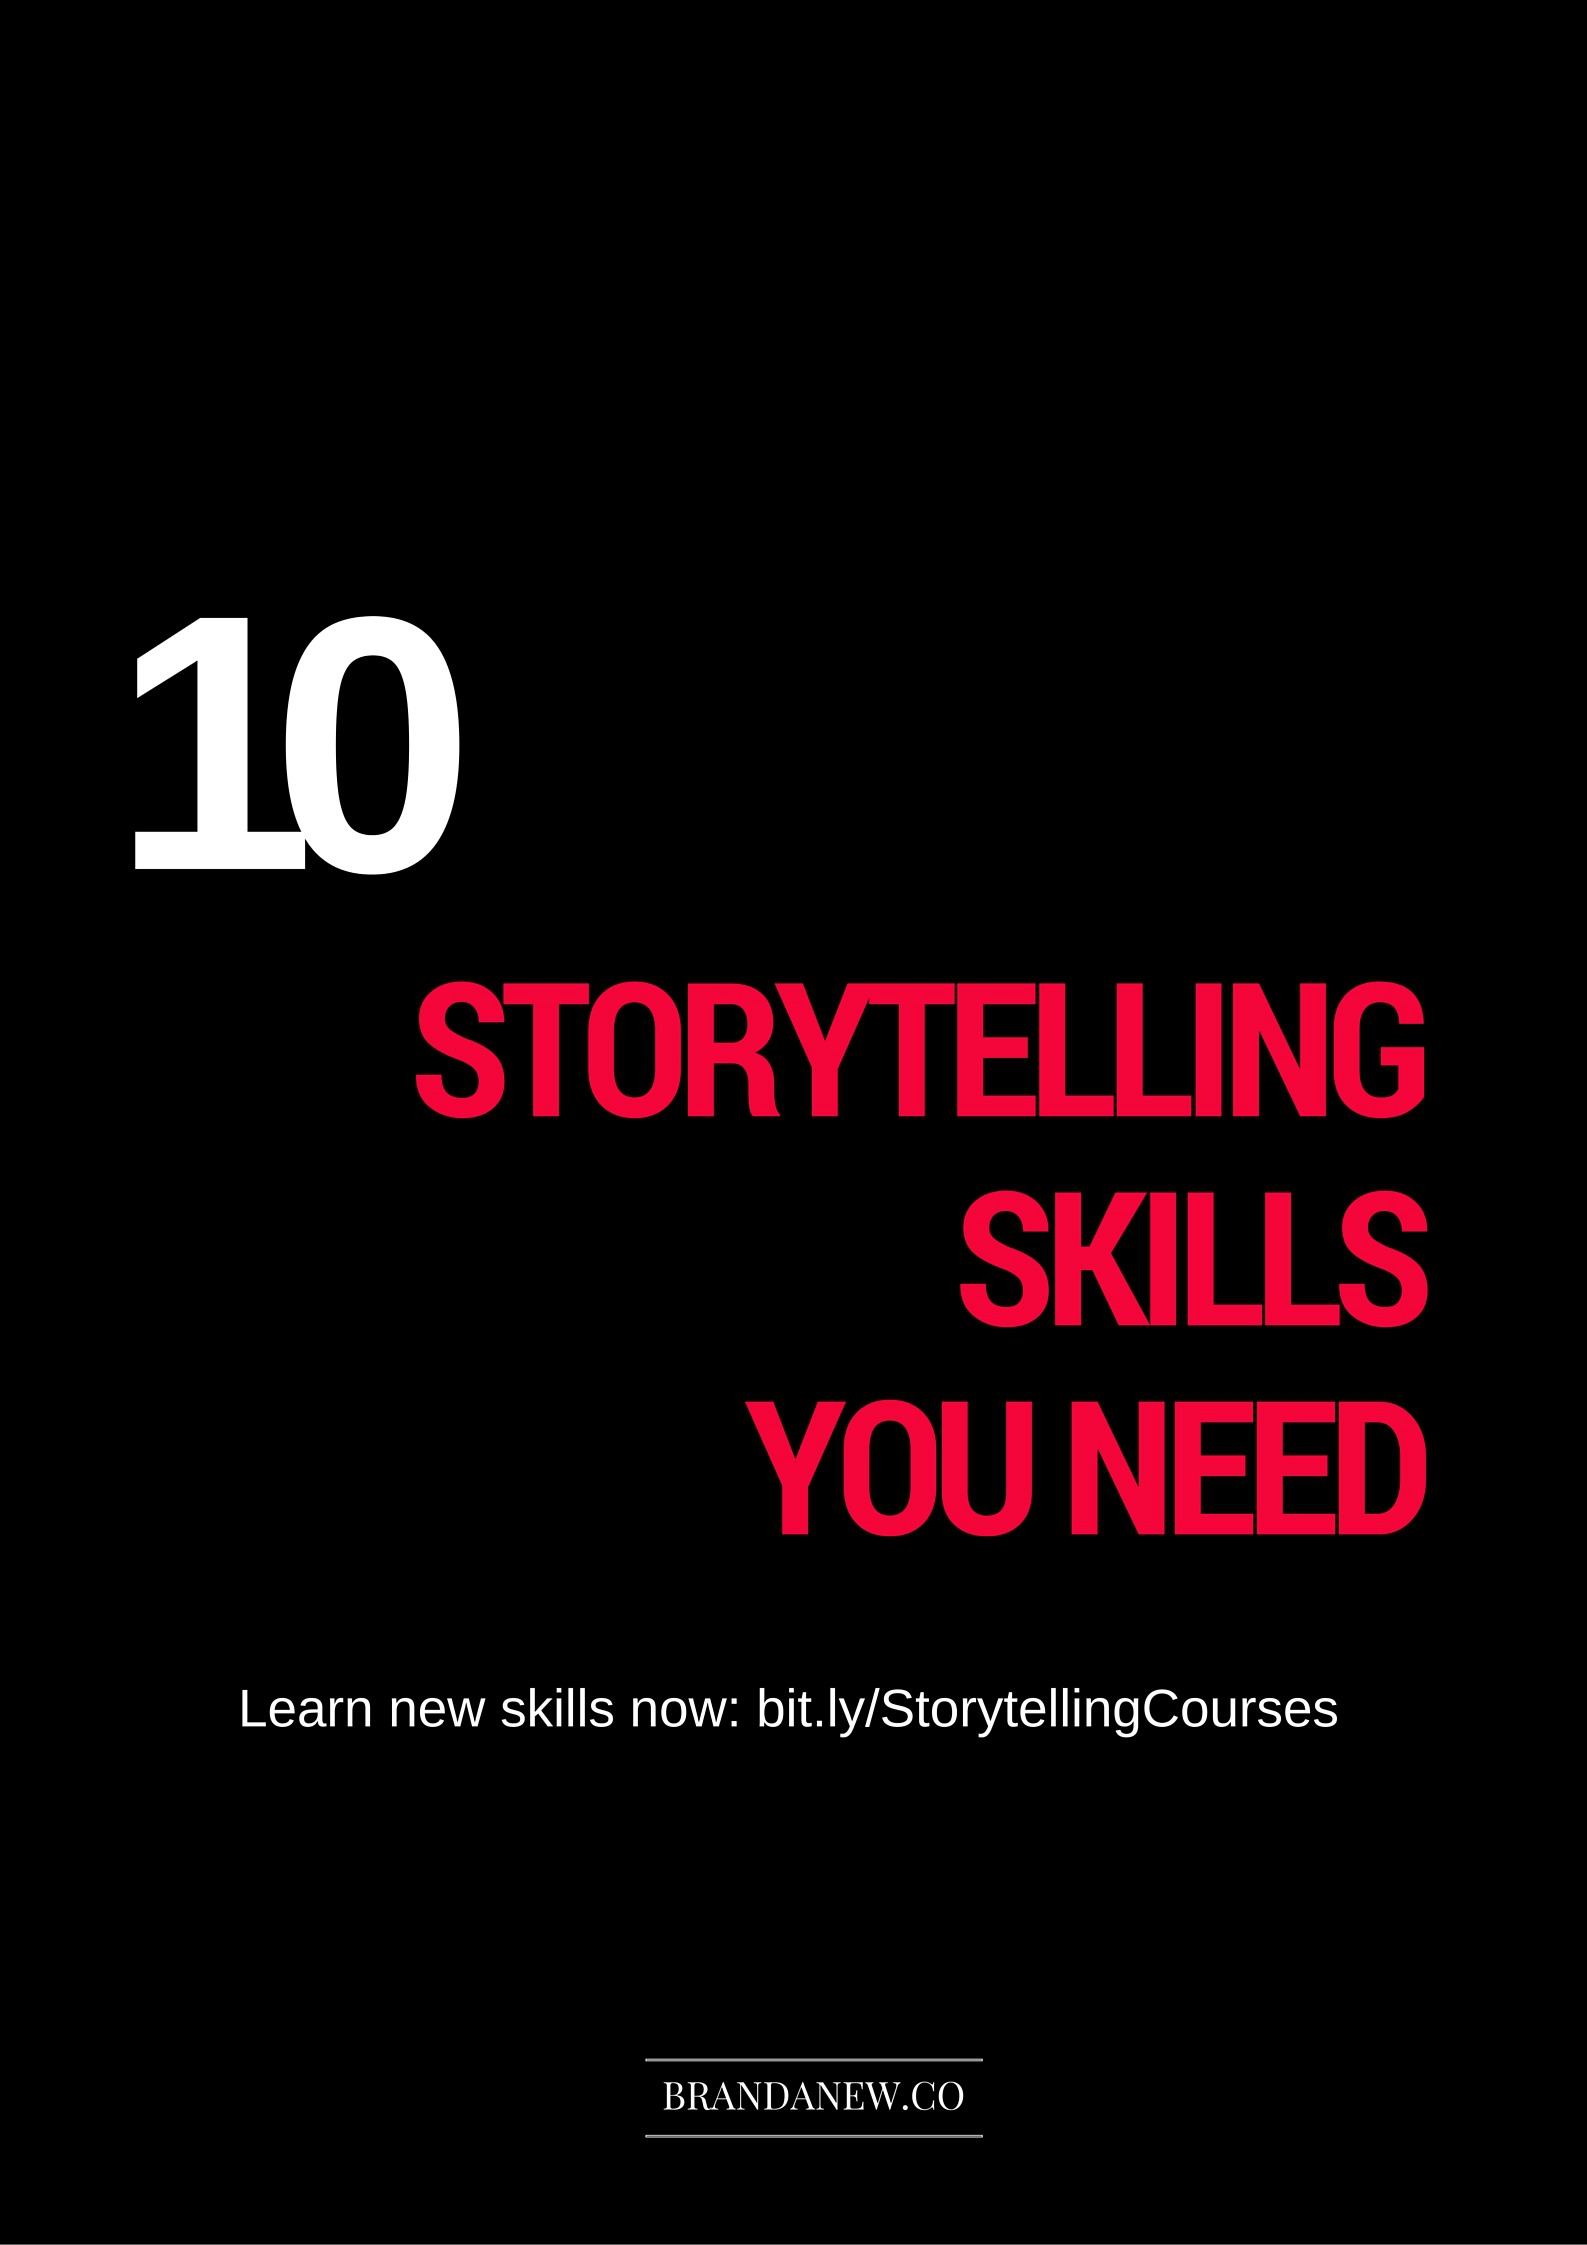 Storytelling Skills You Need brandanew